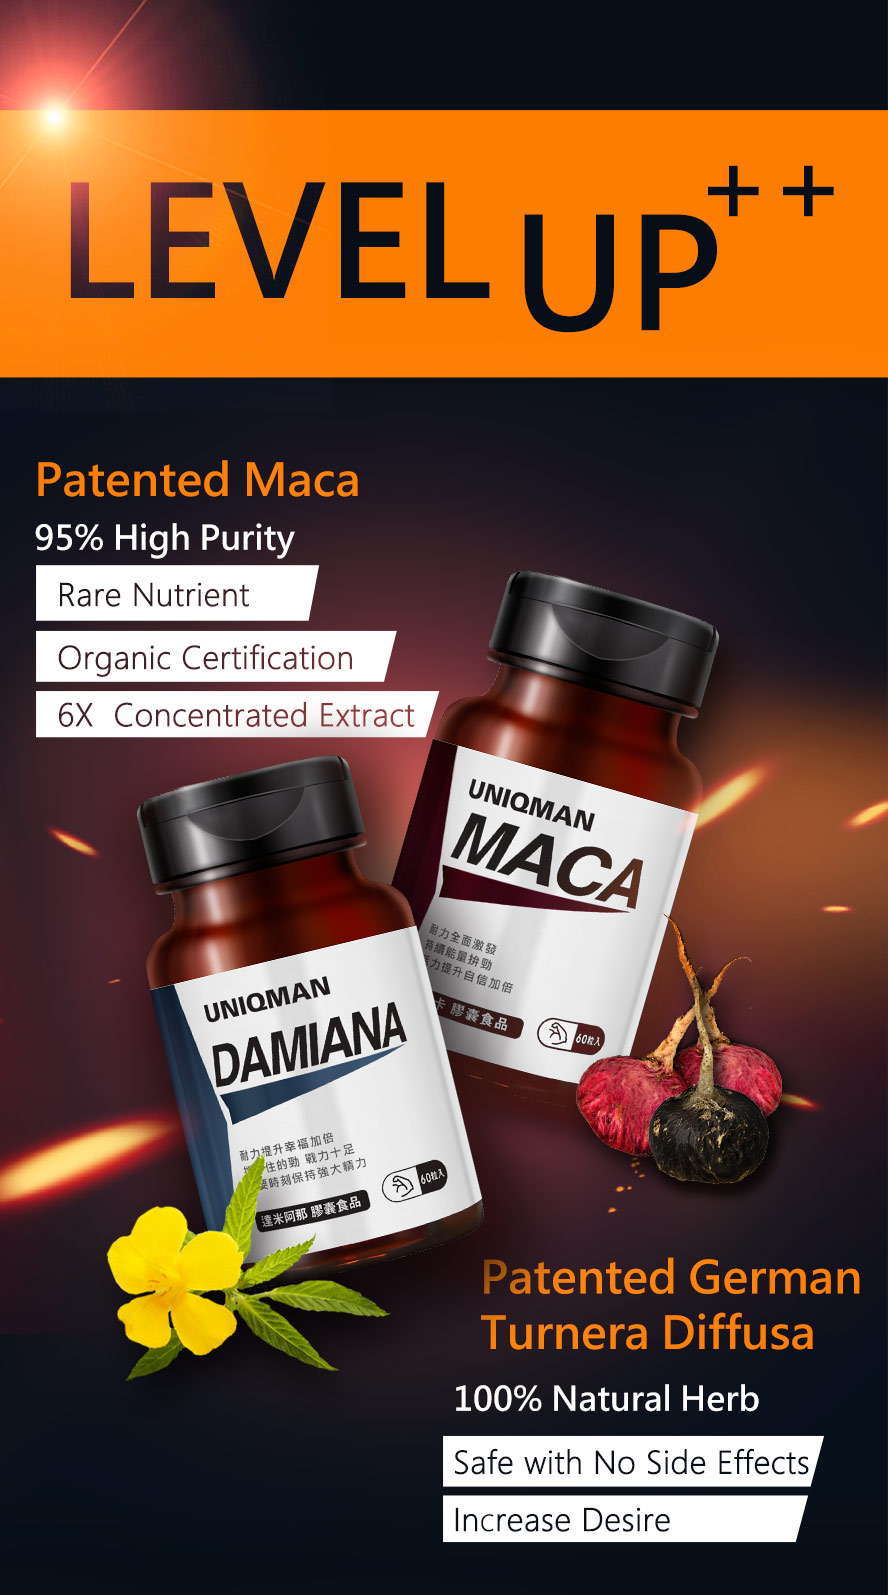 Damiana unleashes your wild power